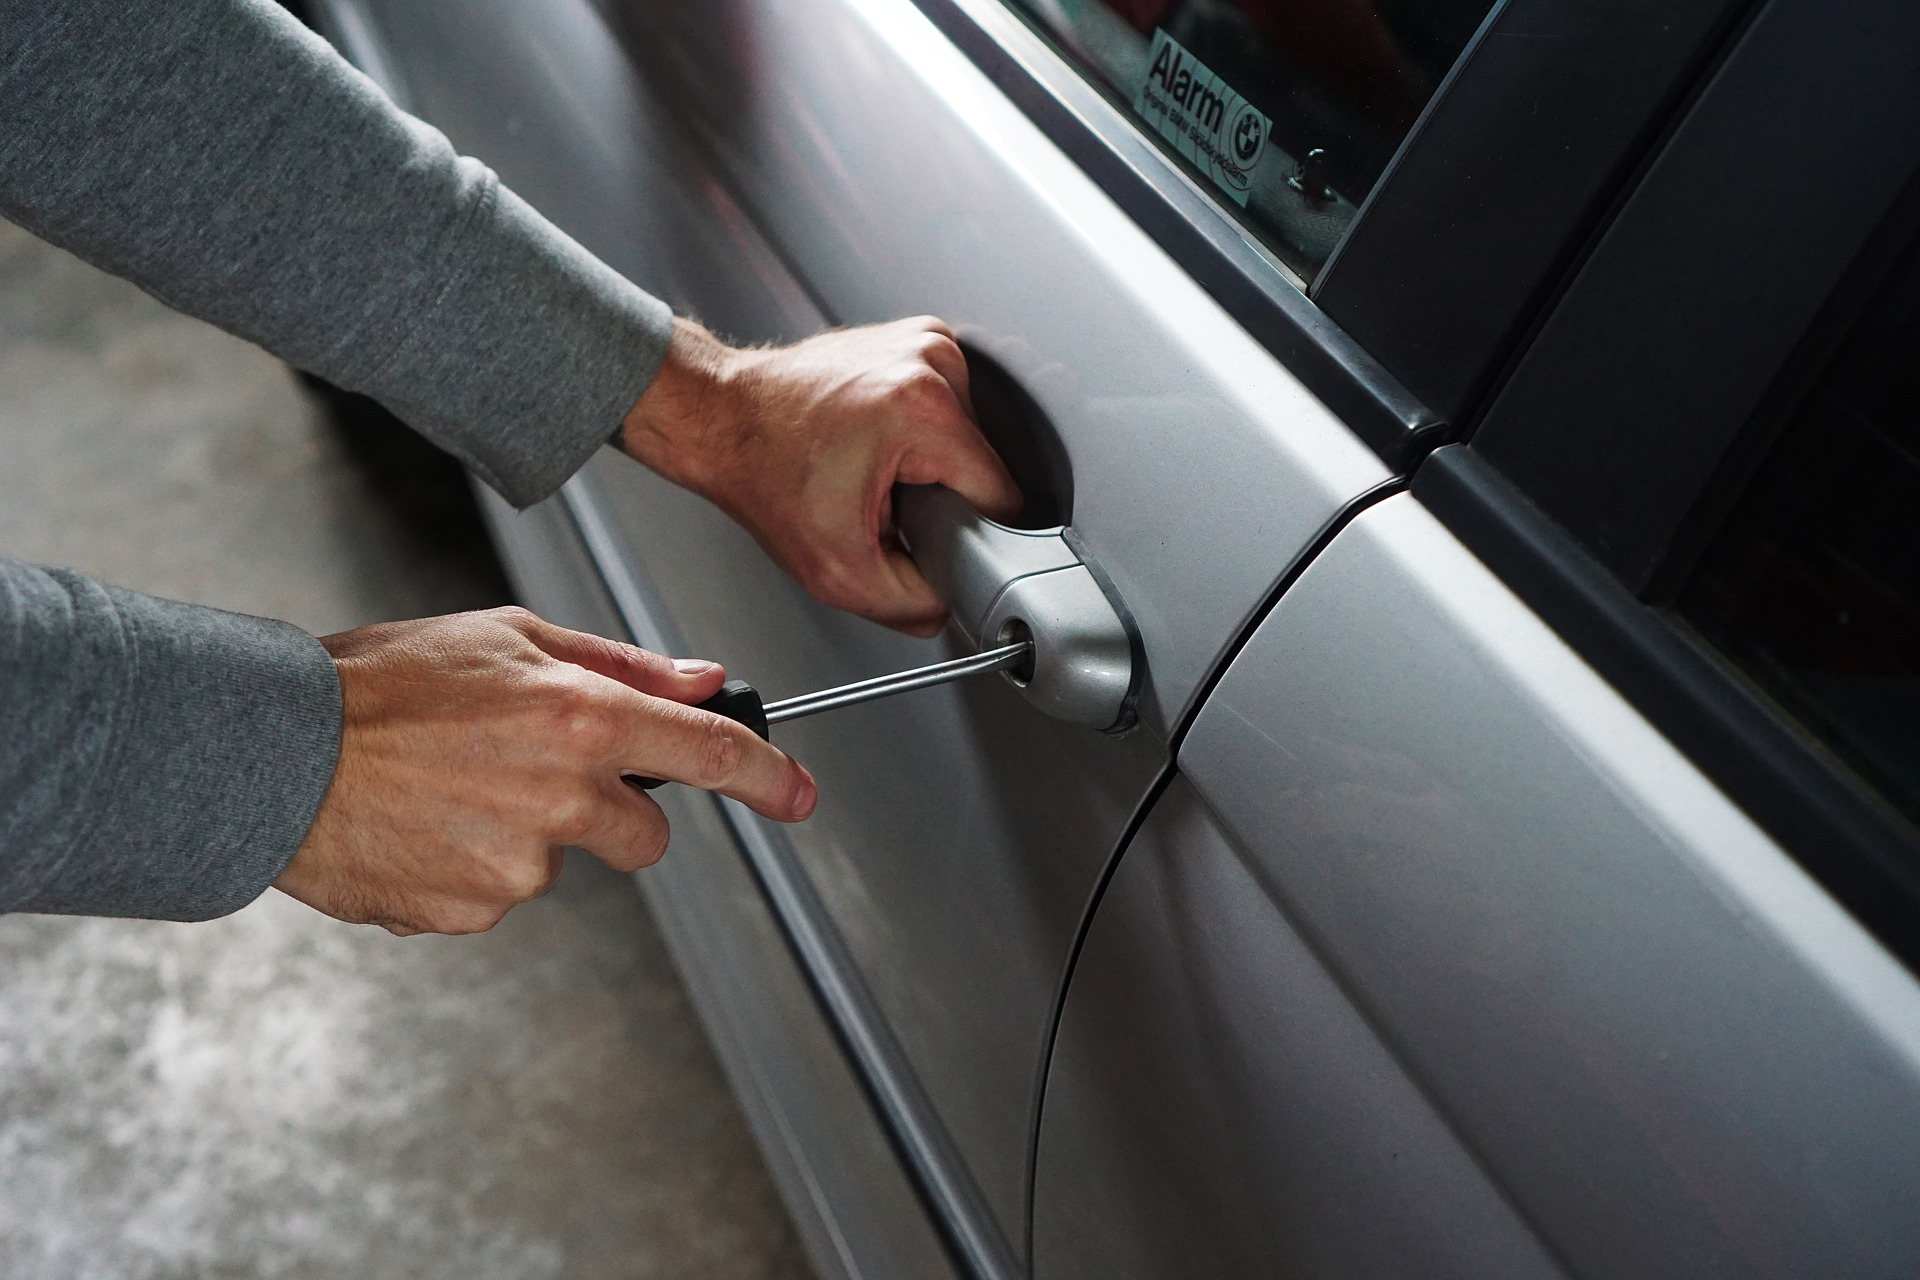 Tips To Prevent Vehicle Theft